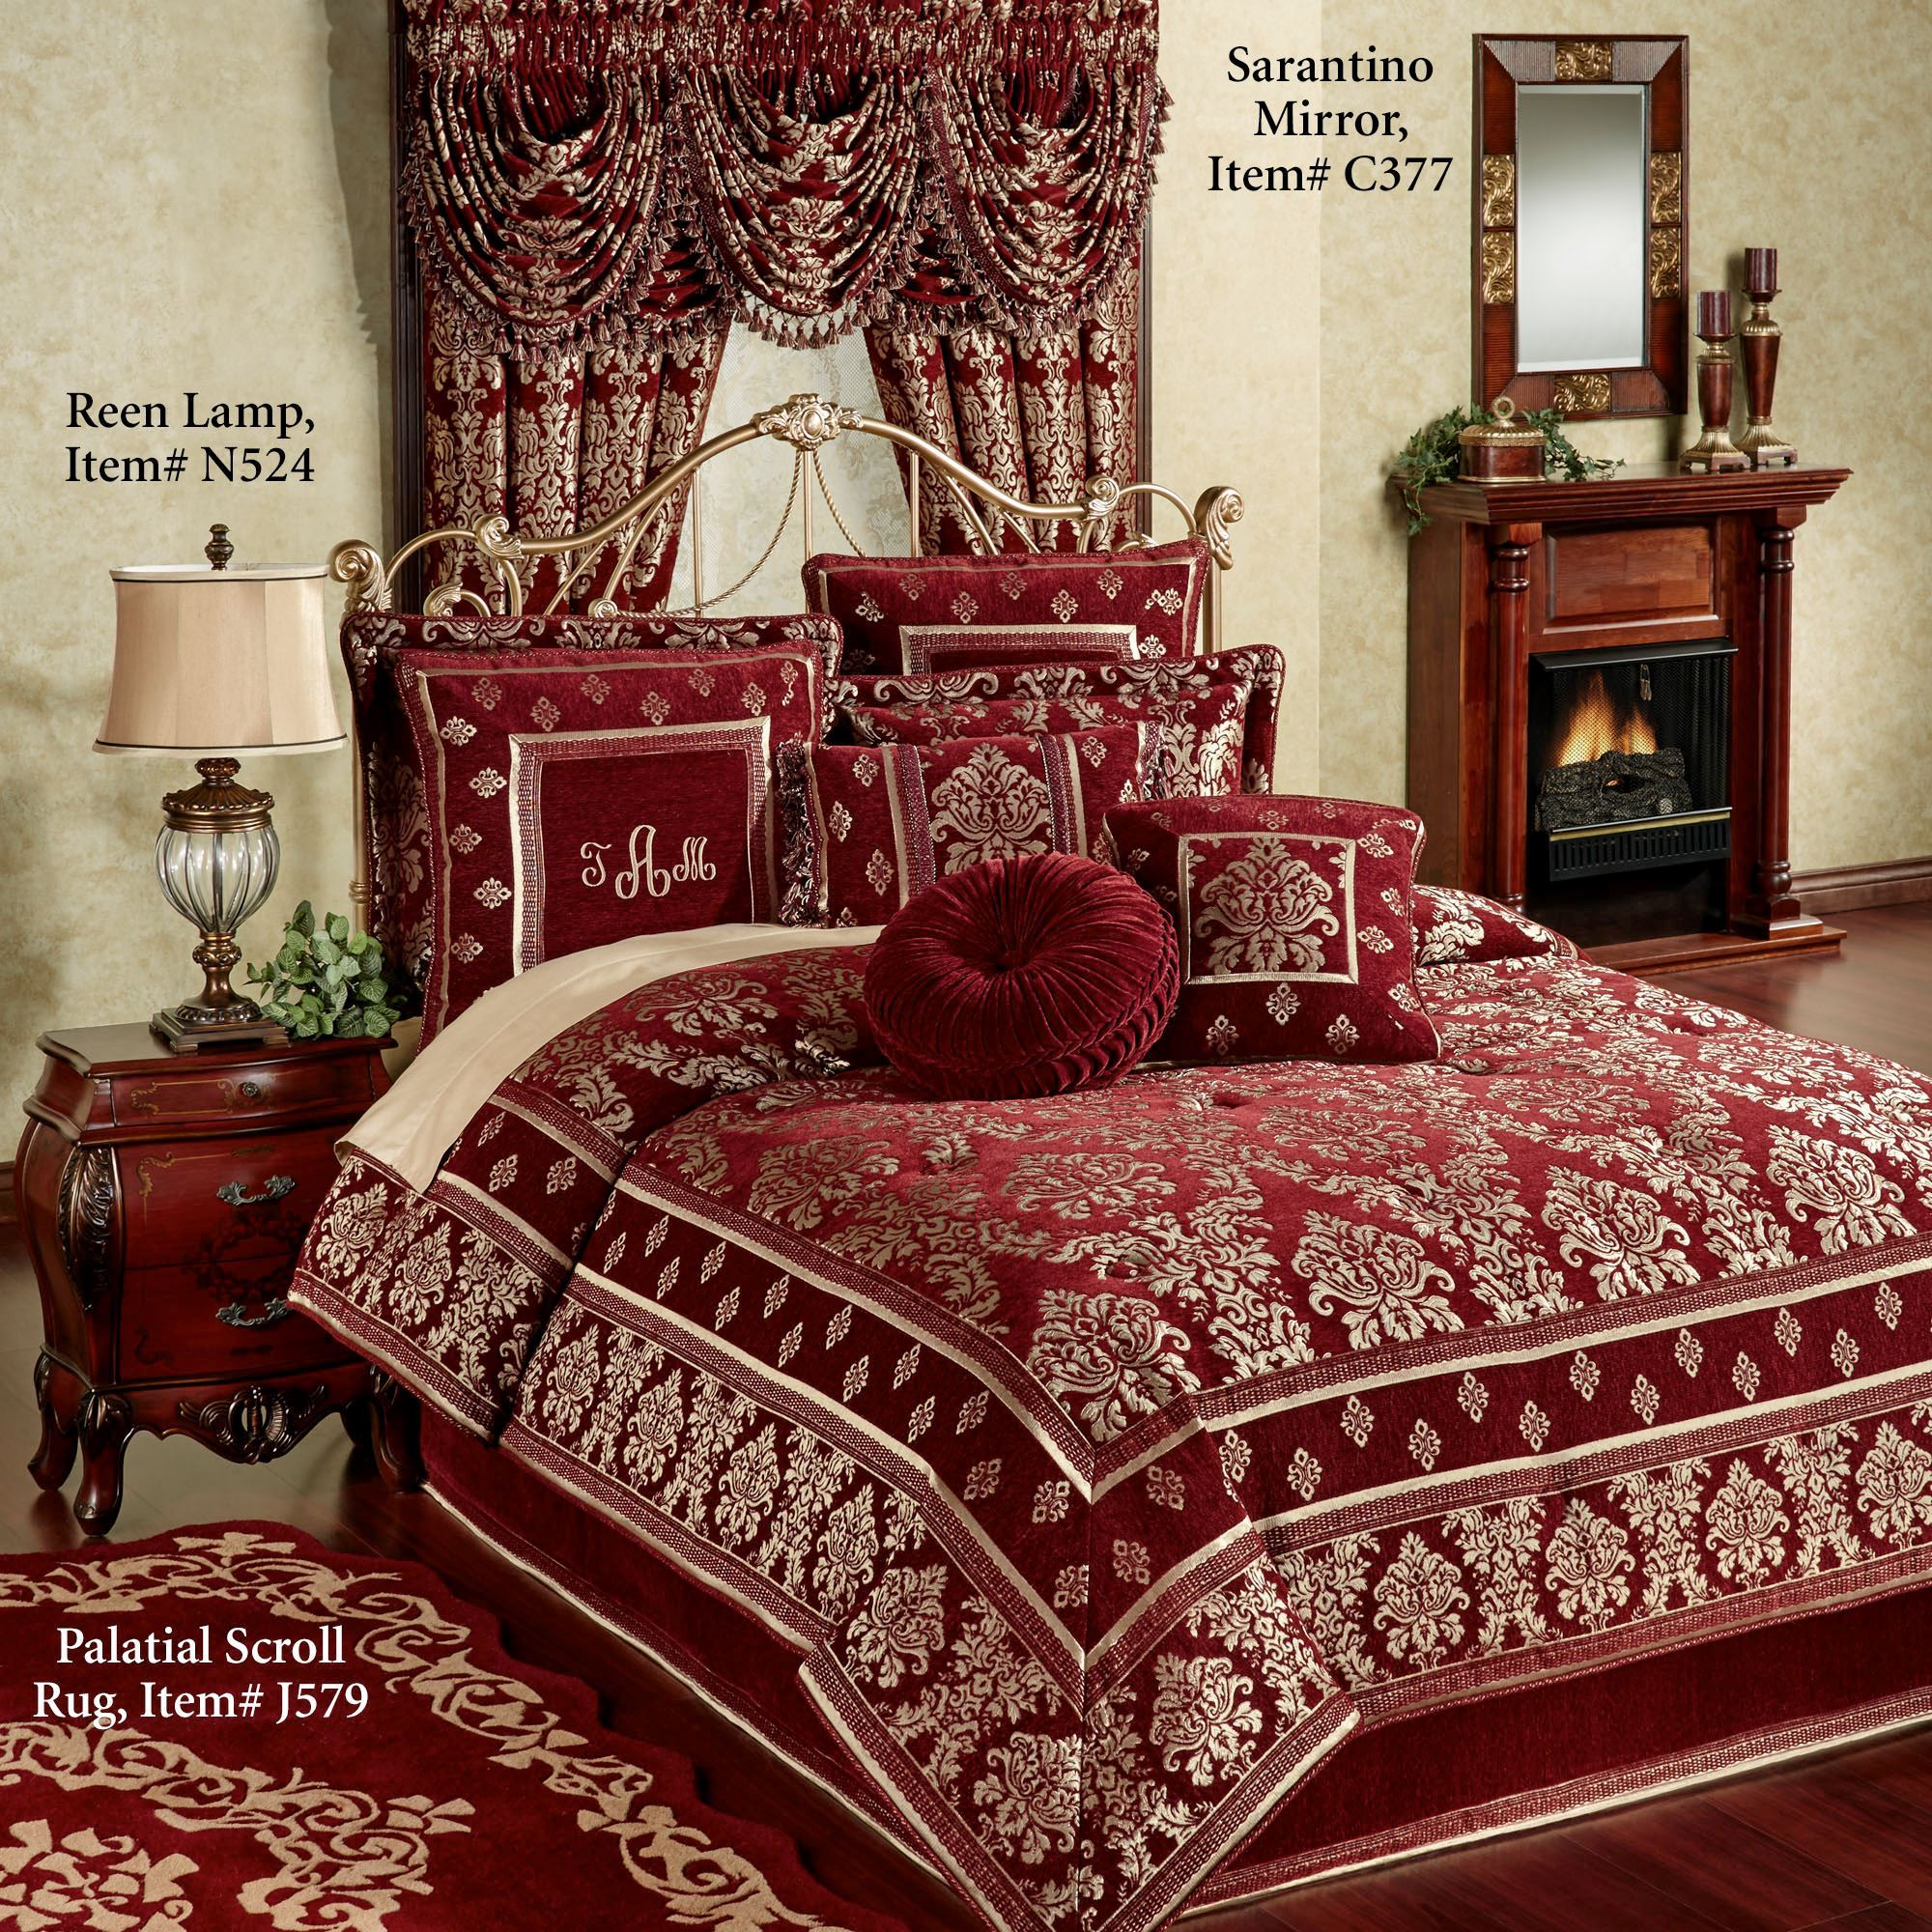 burgundy twin bedding and better image homes comforter stupendous luxury vines cute staggering sets gardens bedroom brown queen piece comforters set uk